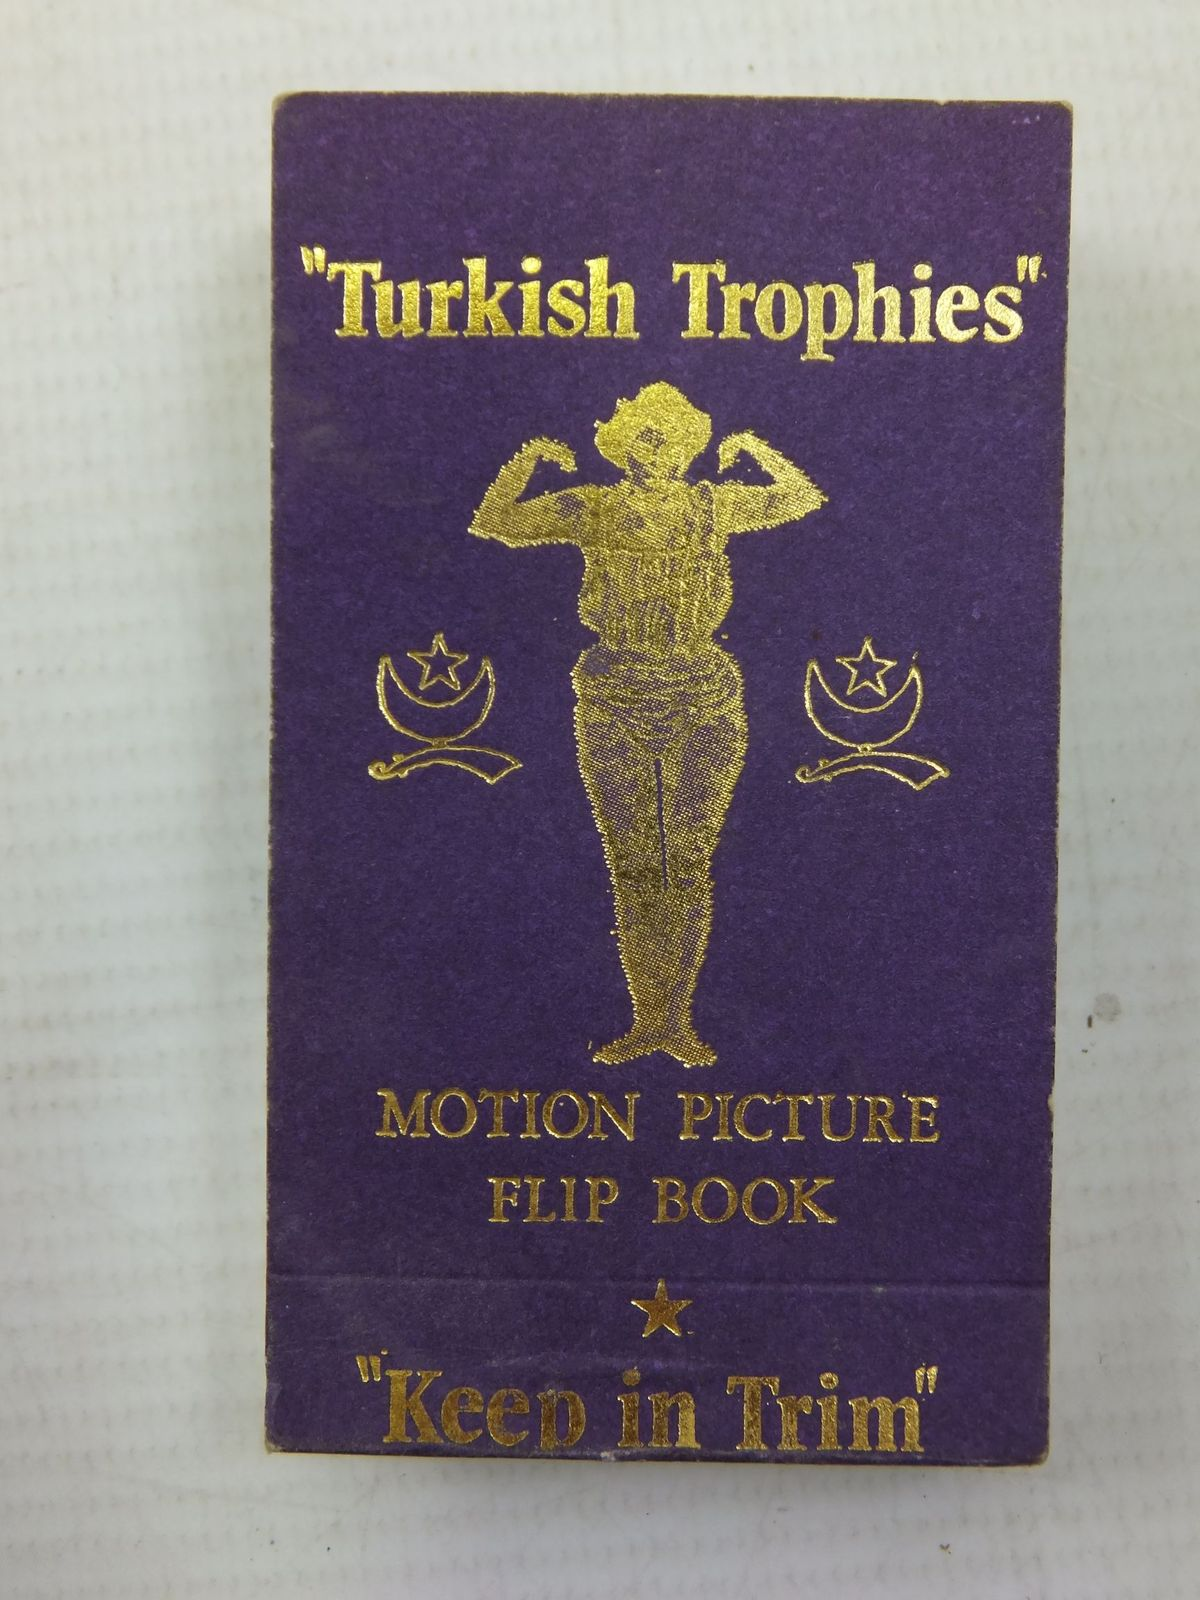 Photo of TURKISH TROPHIES published by Merrimack Publishing Corp. (STOCK CODE: 2113483)  for sale by Stella & Rose's Books